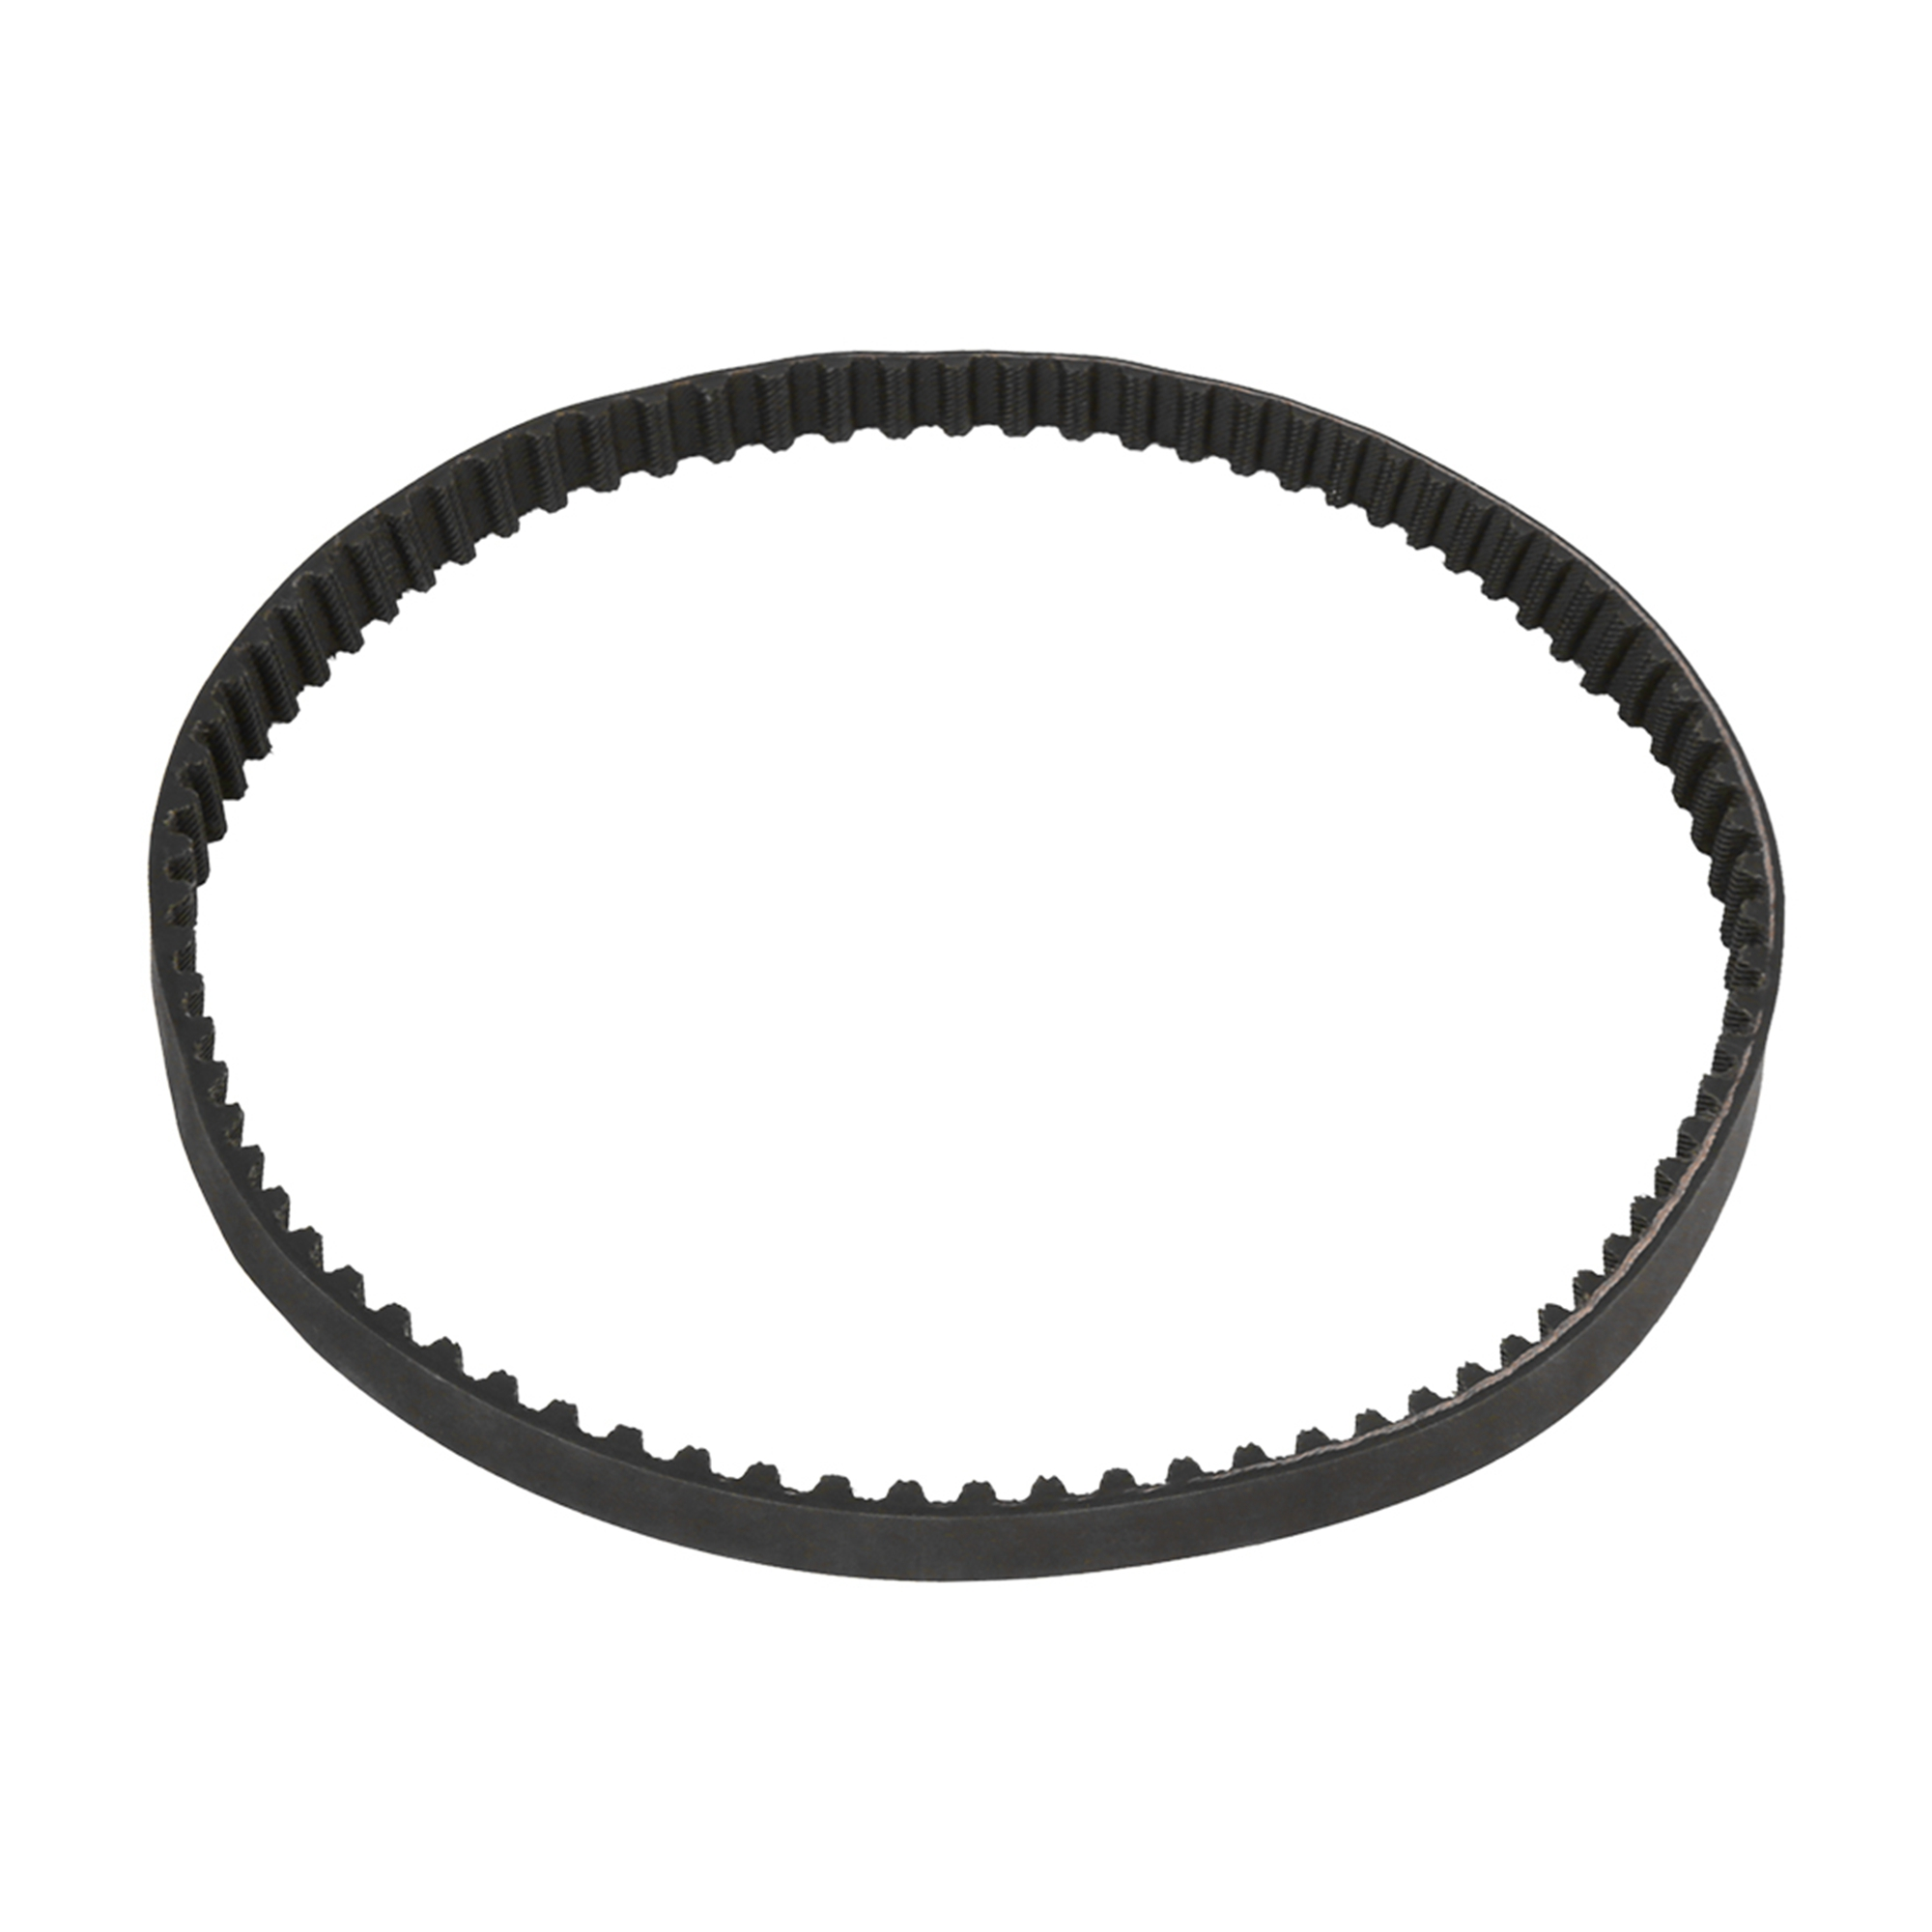 80RPP16 Boat Timing Belt for Yamaha Outboard 25 30 40hp 4 Stroke 65W-46241-00